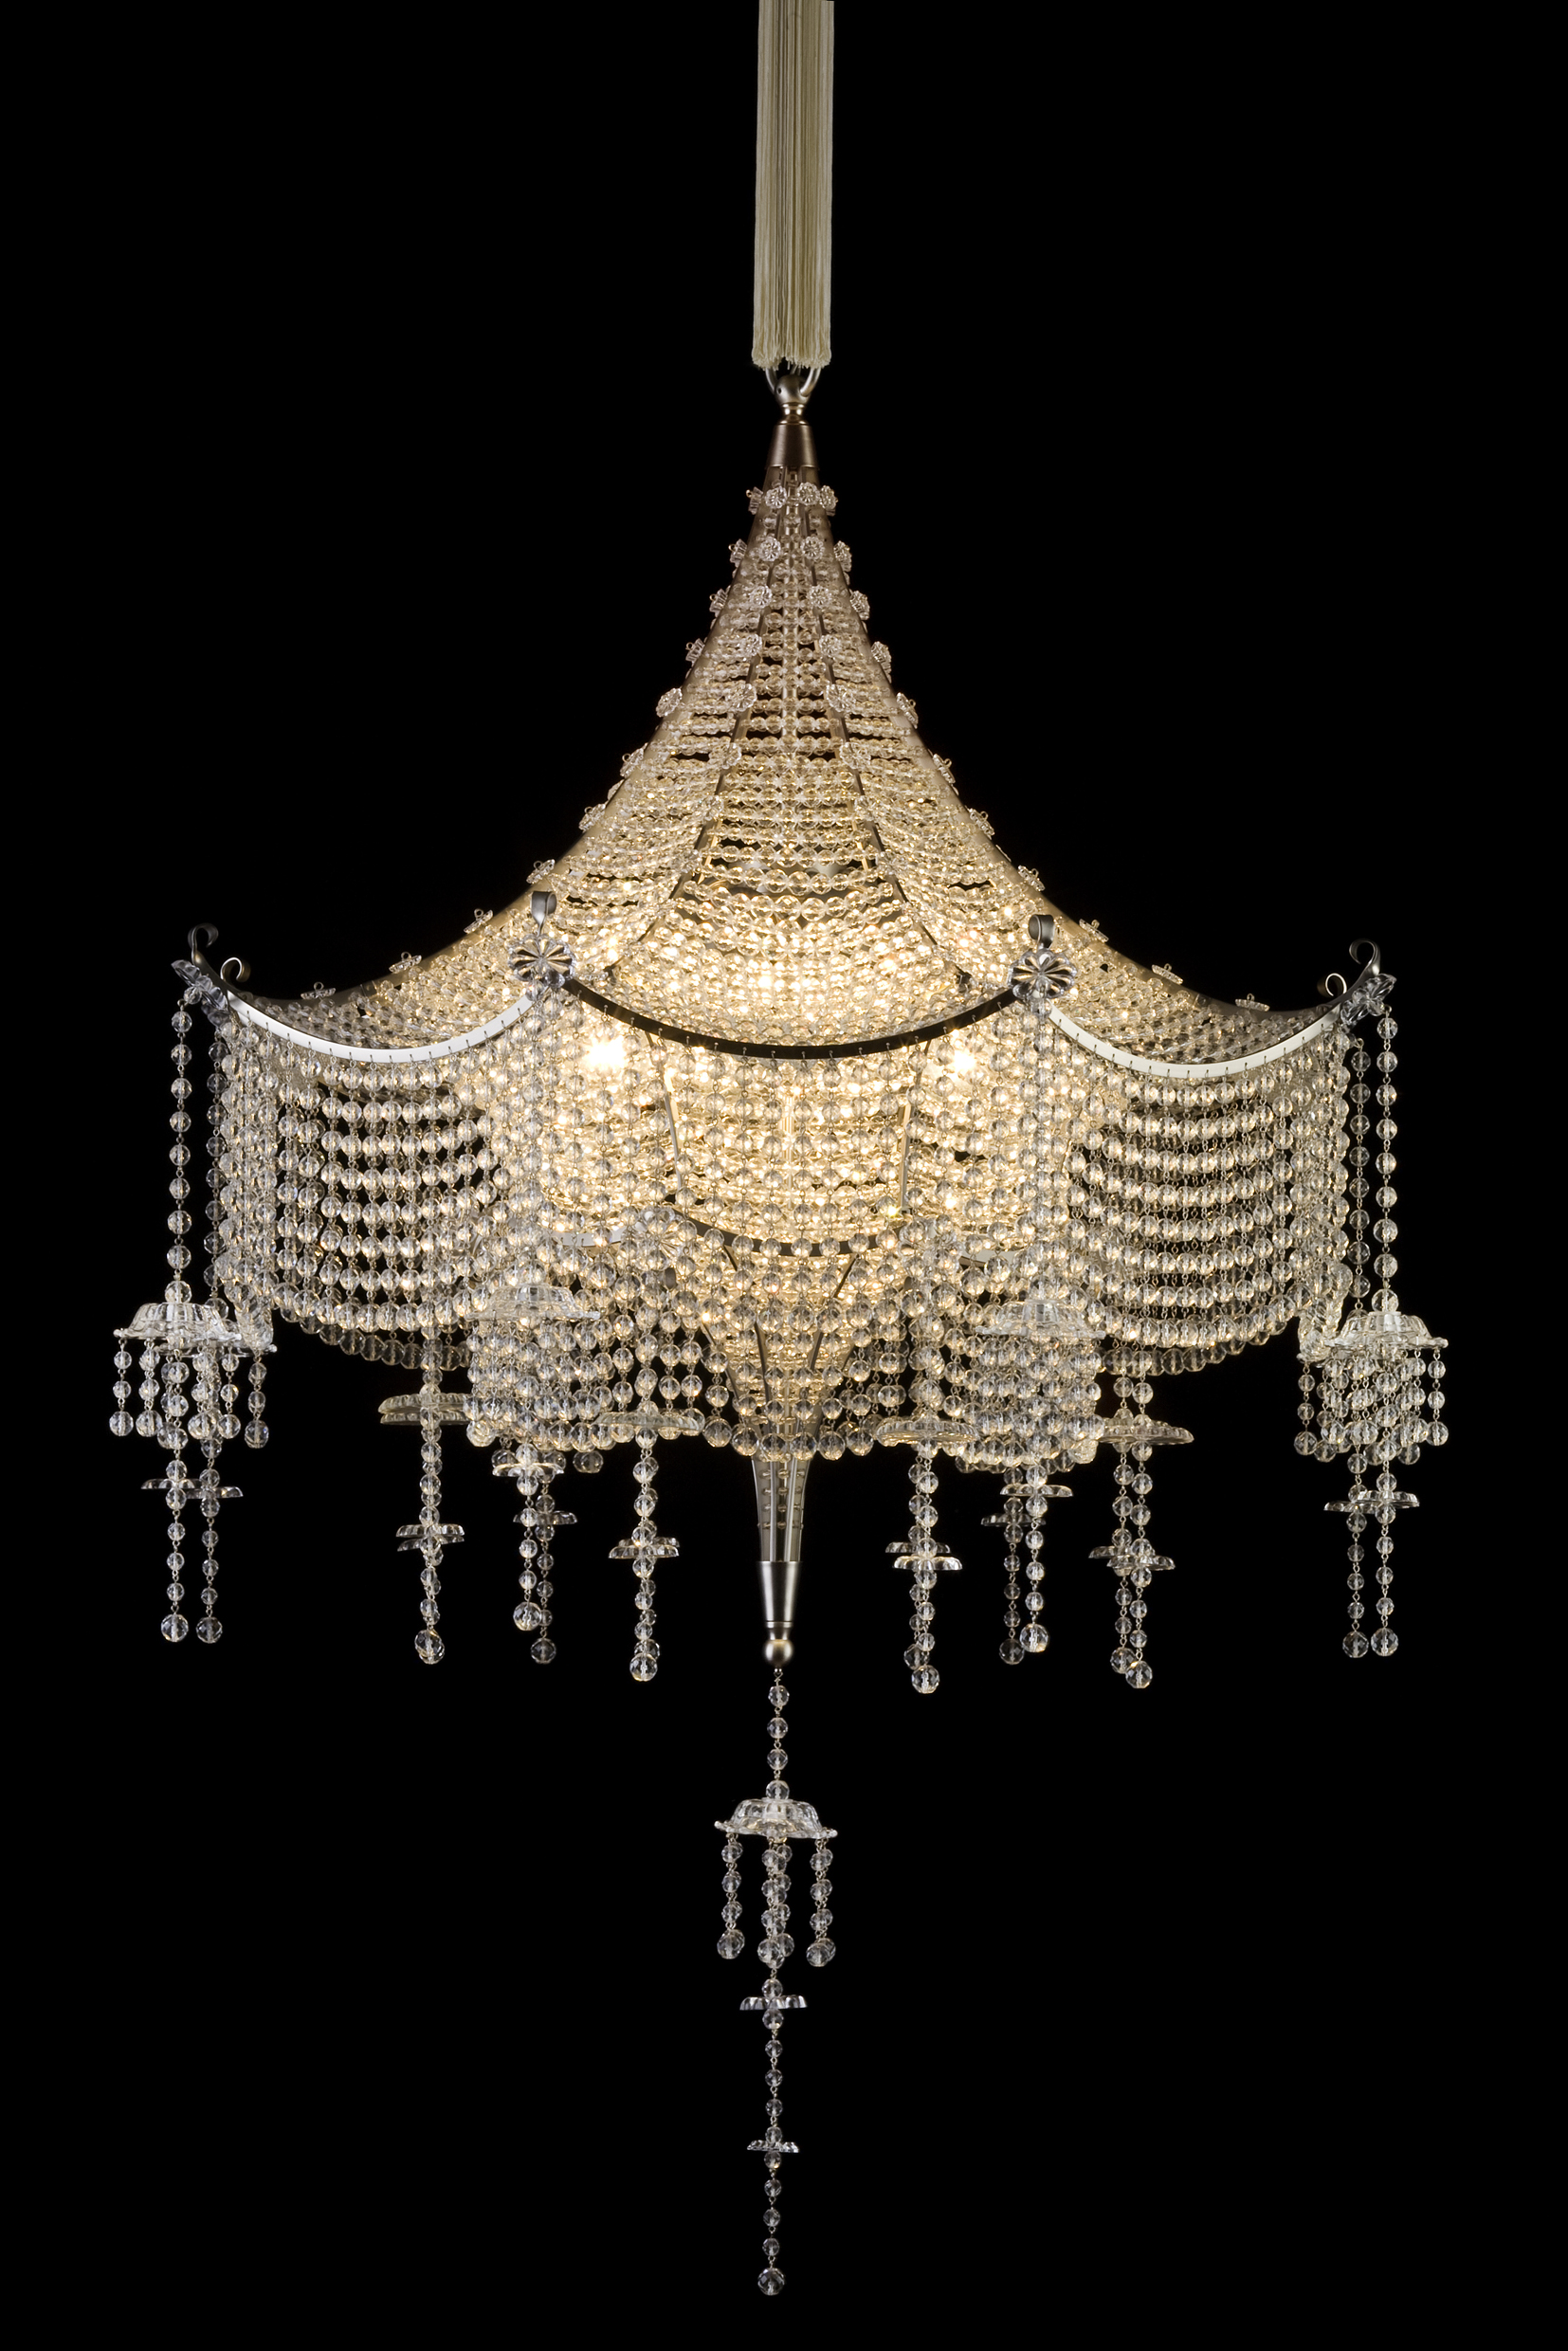 Report from the opening of the exhibition chandeliers juwels of j l lobmeyr chineserluster fr das wiener theater scala aloadofball Choice Image